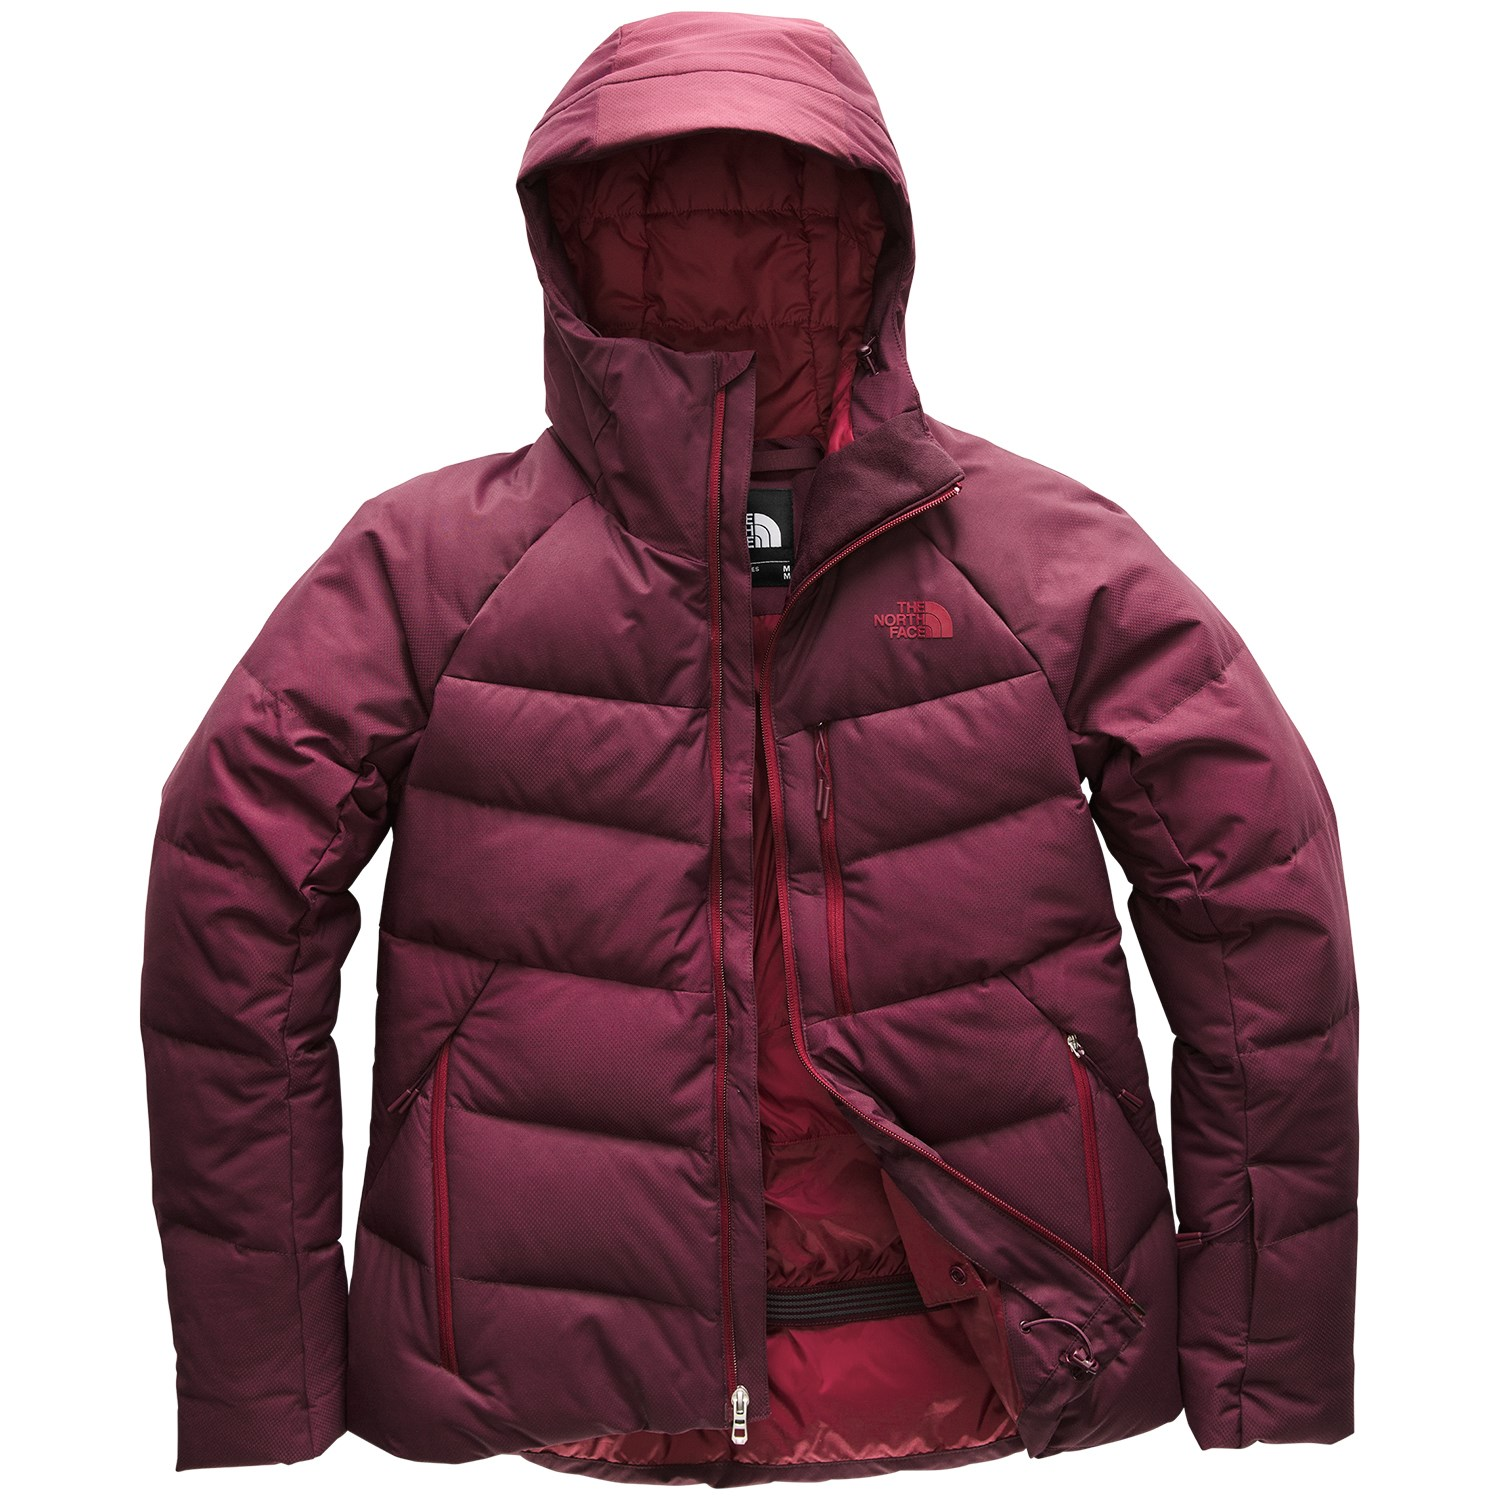 0b43a9bb8 The North Face Heavenly Down Jacket - Women's